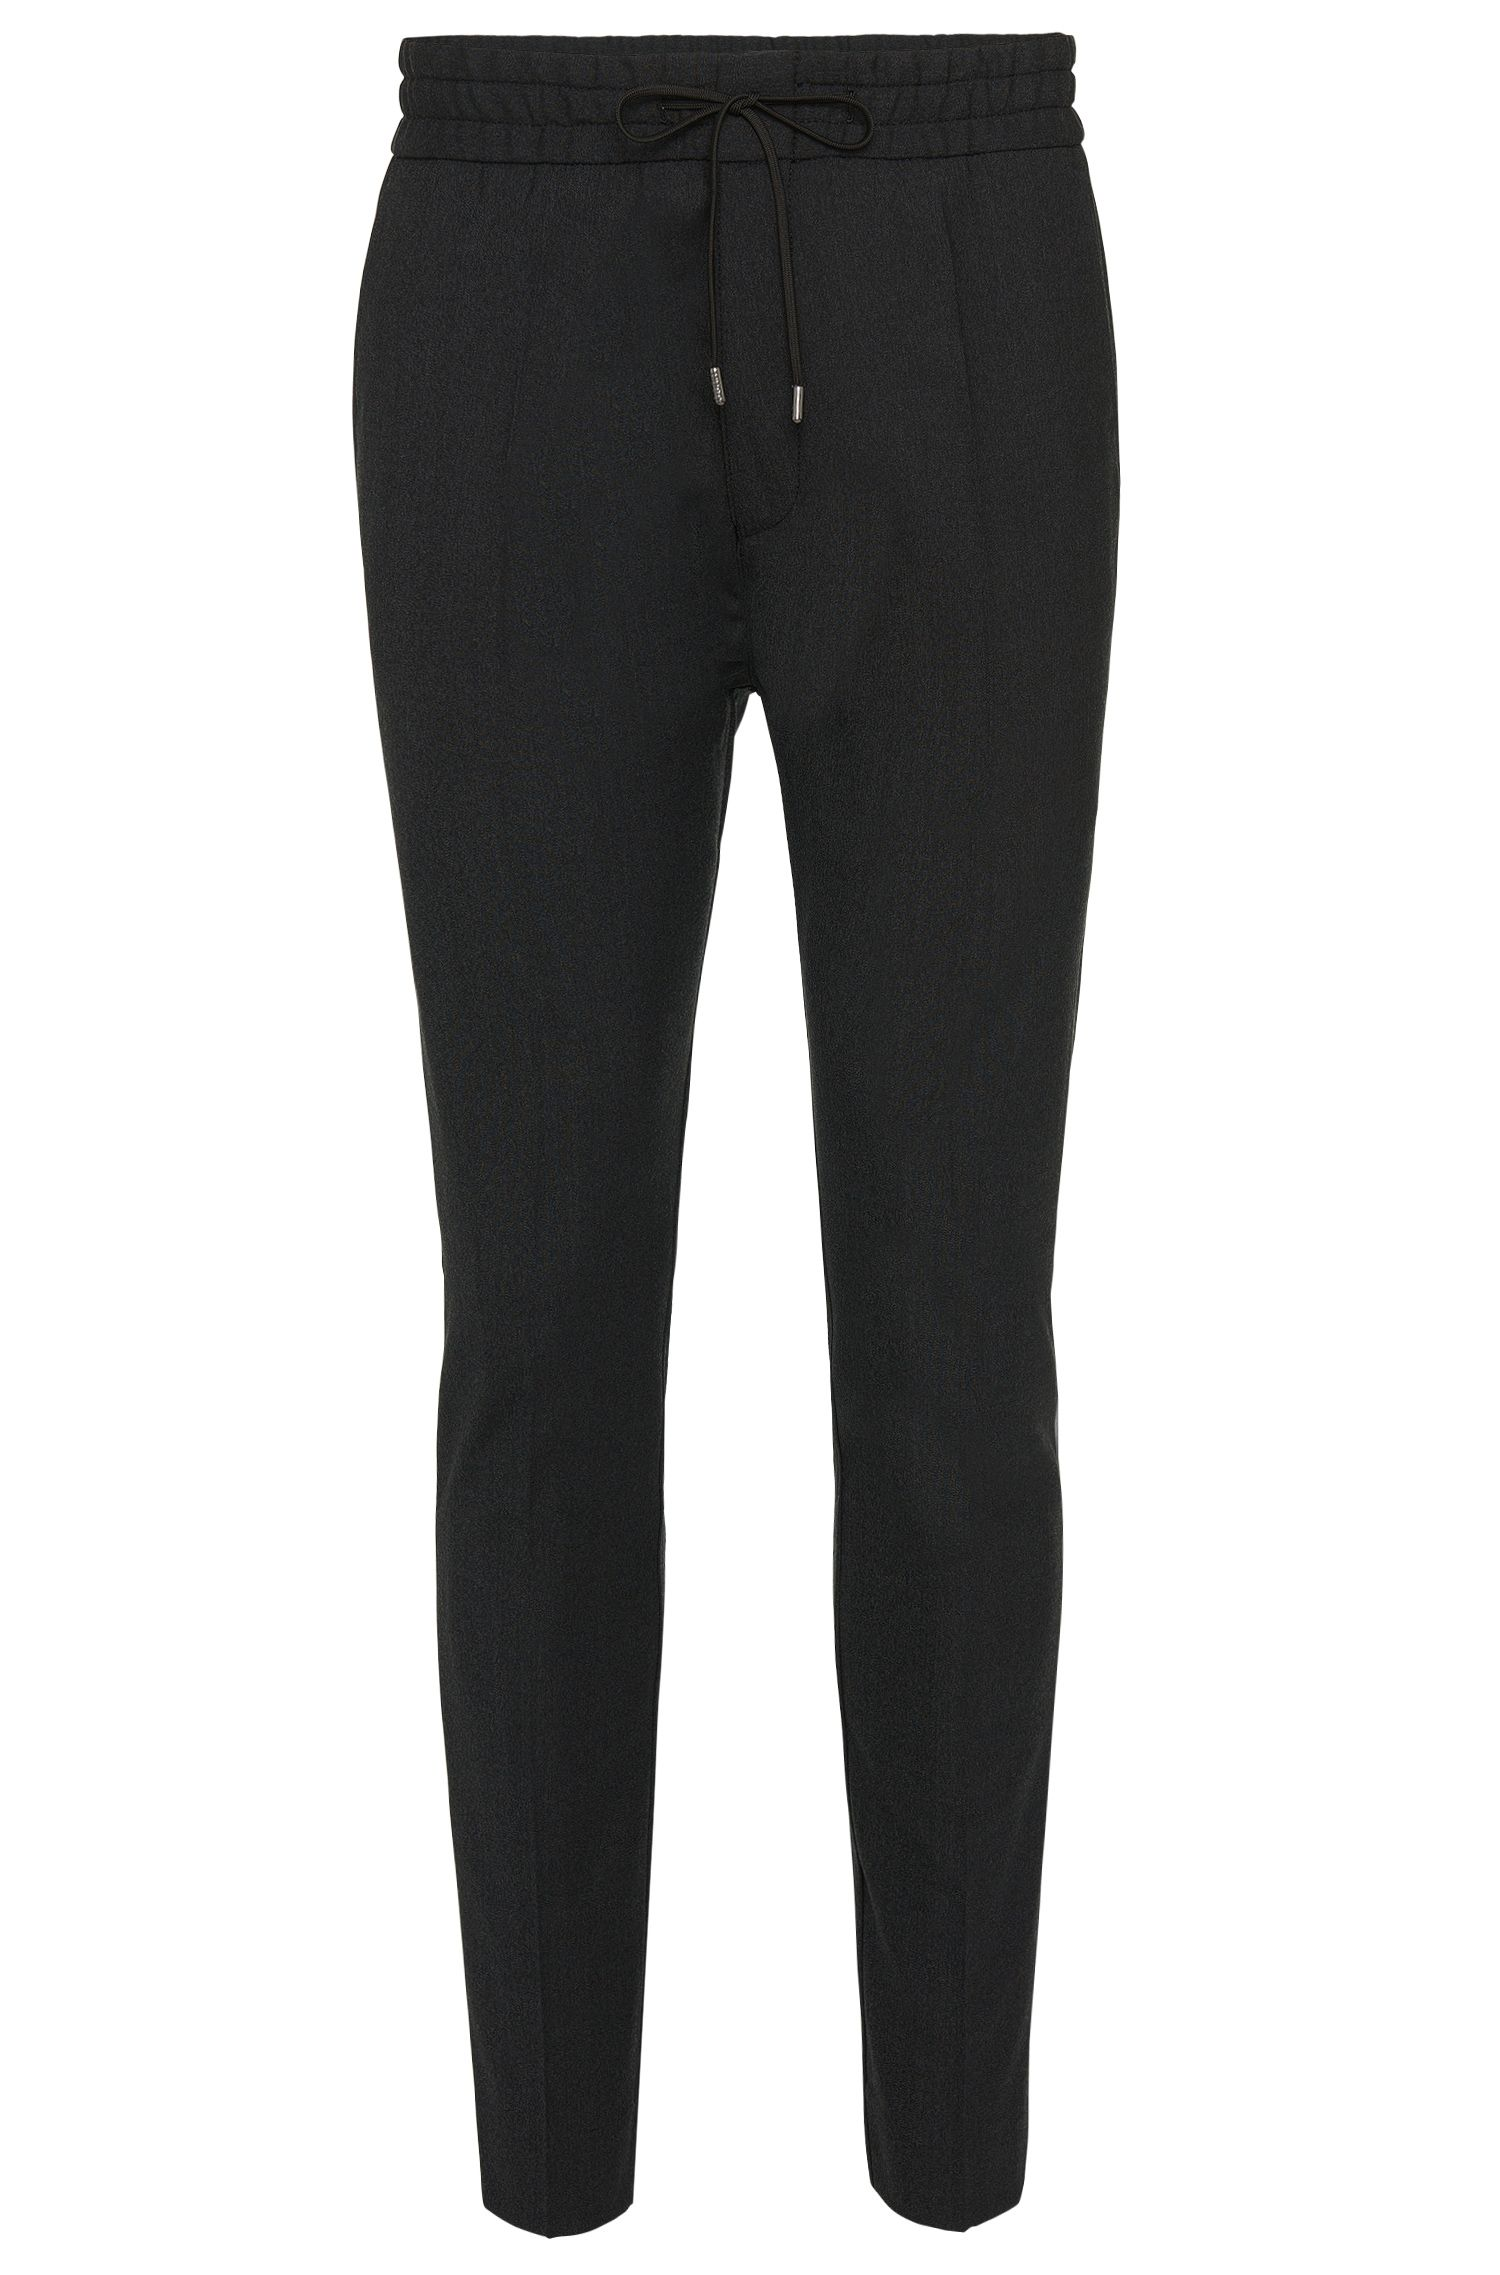 'Himesh' | Tapered Fit, Stretch Virgin Wool Blend Drawstring Trousers